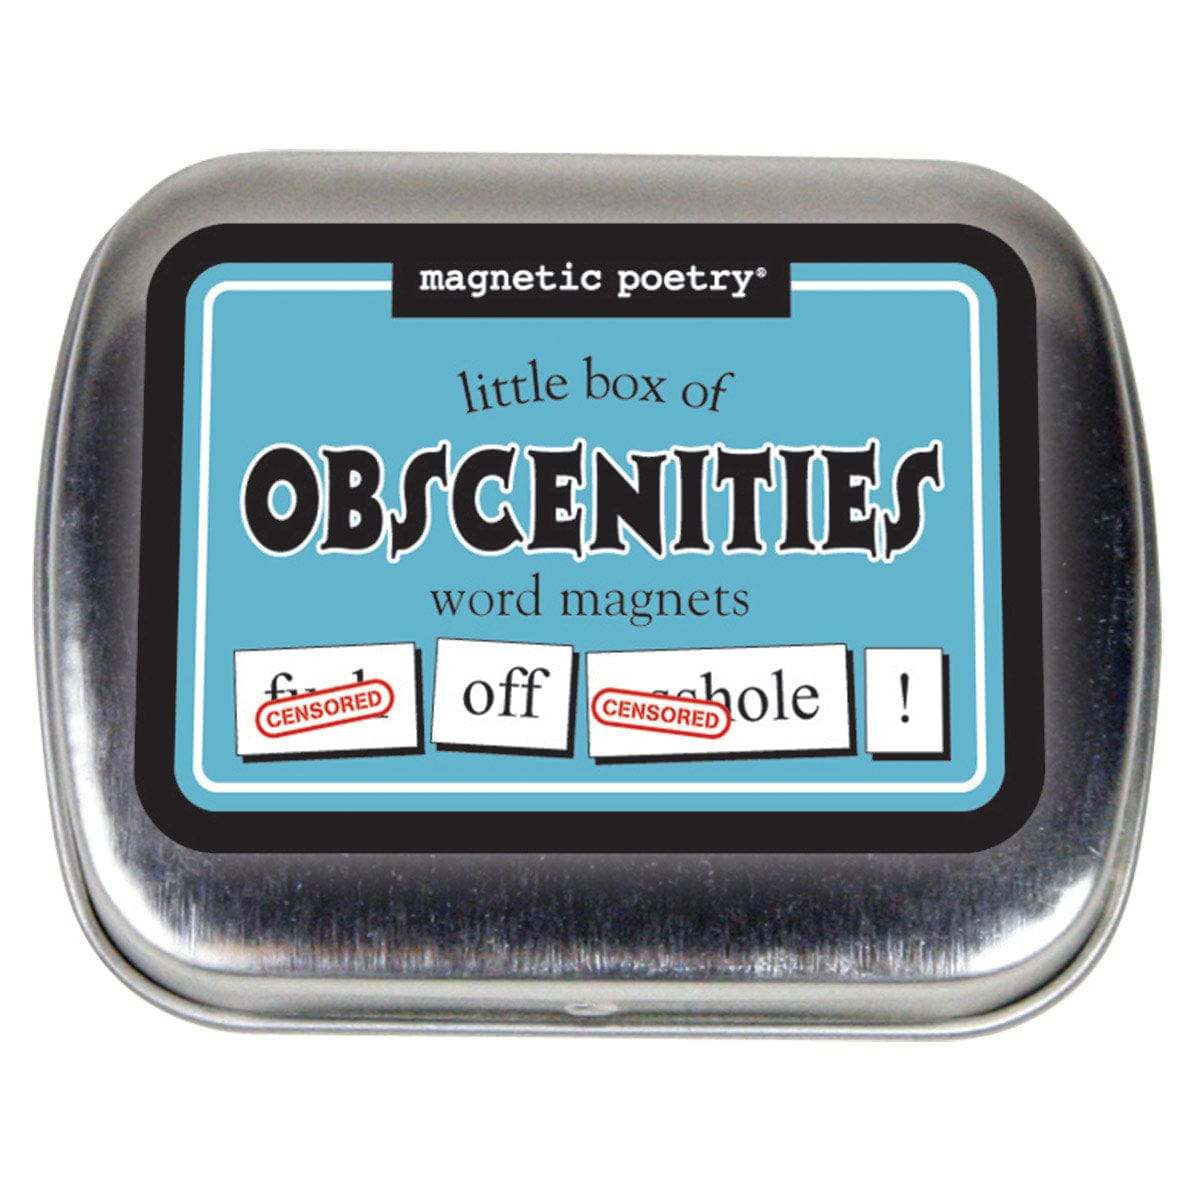 Little Box of Obscenities Word Magnets by Magnetic Poetry - rolik